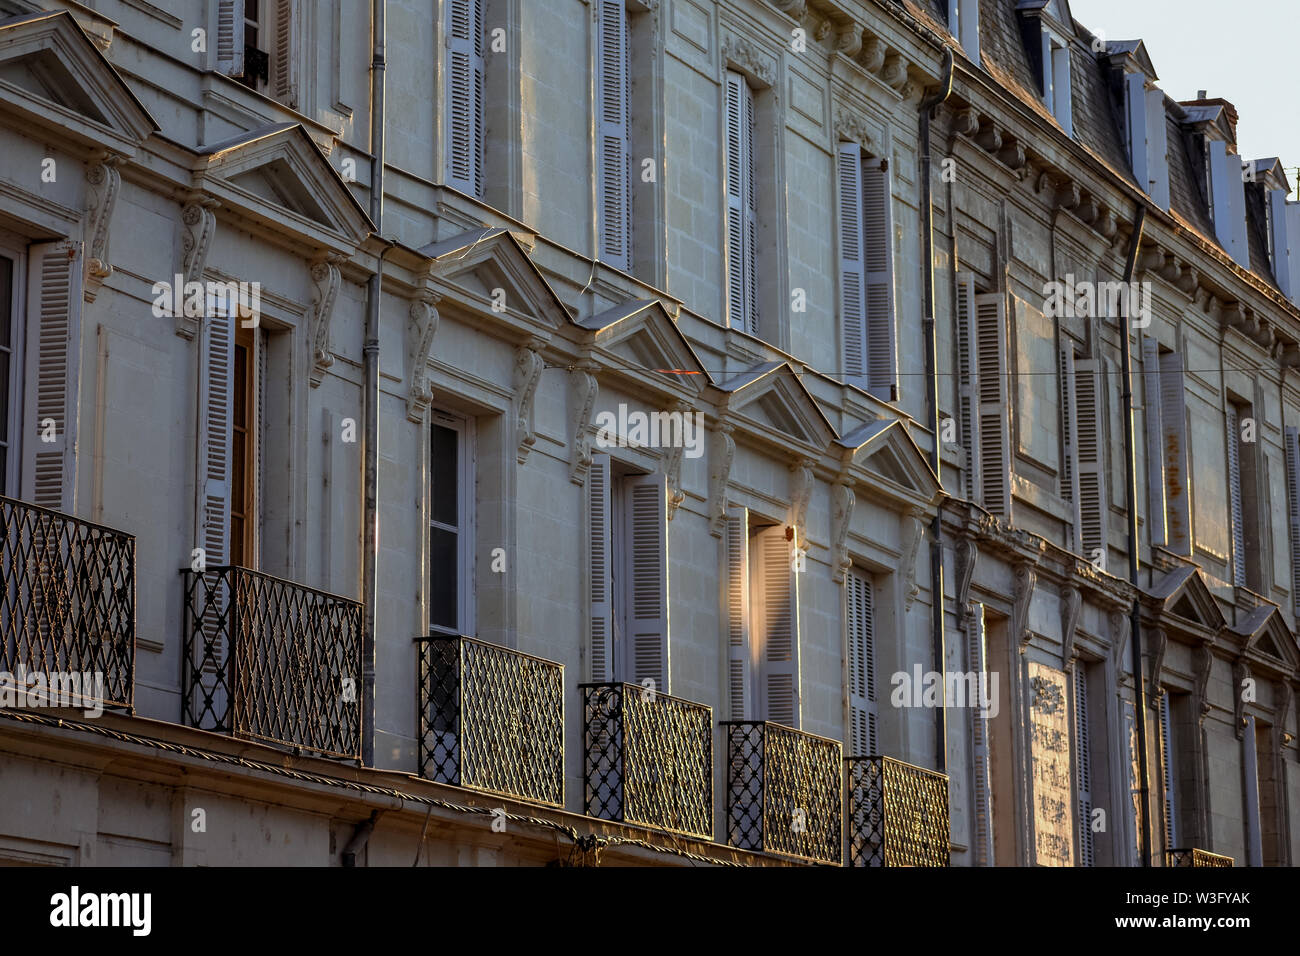 French Building ancient facade at sunset. - Stock Image